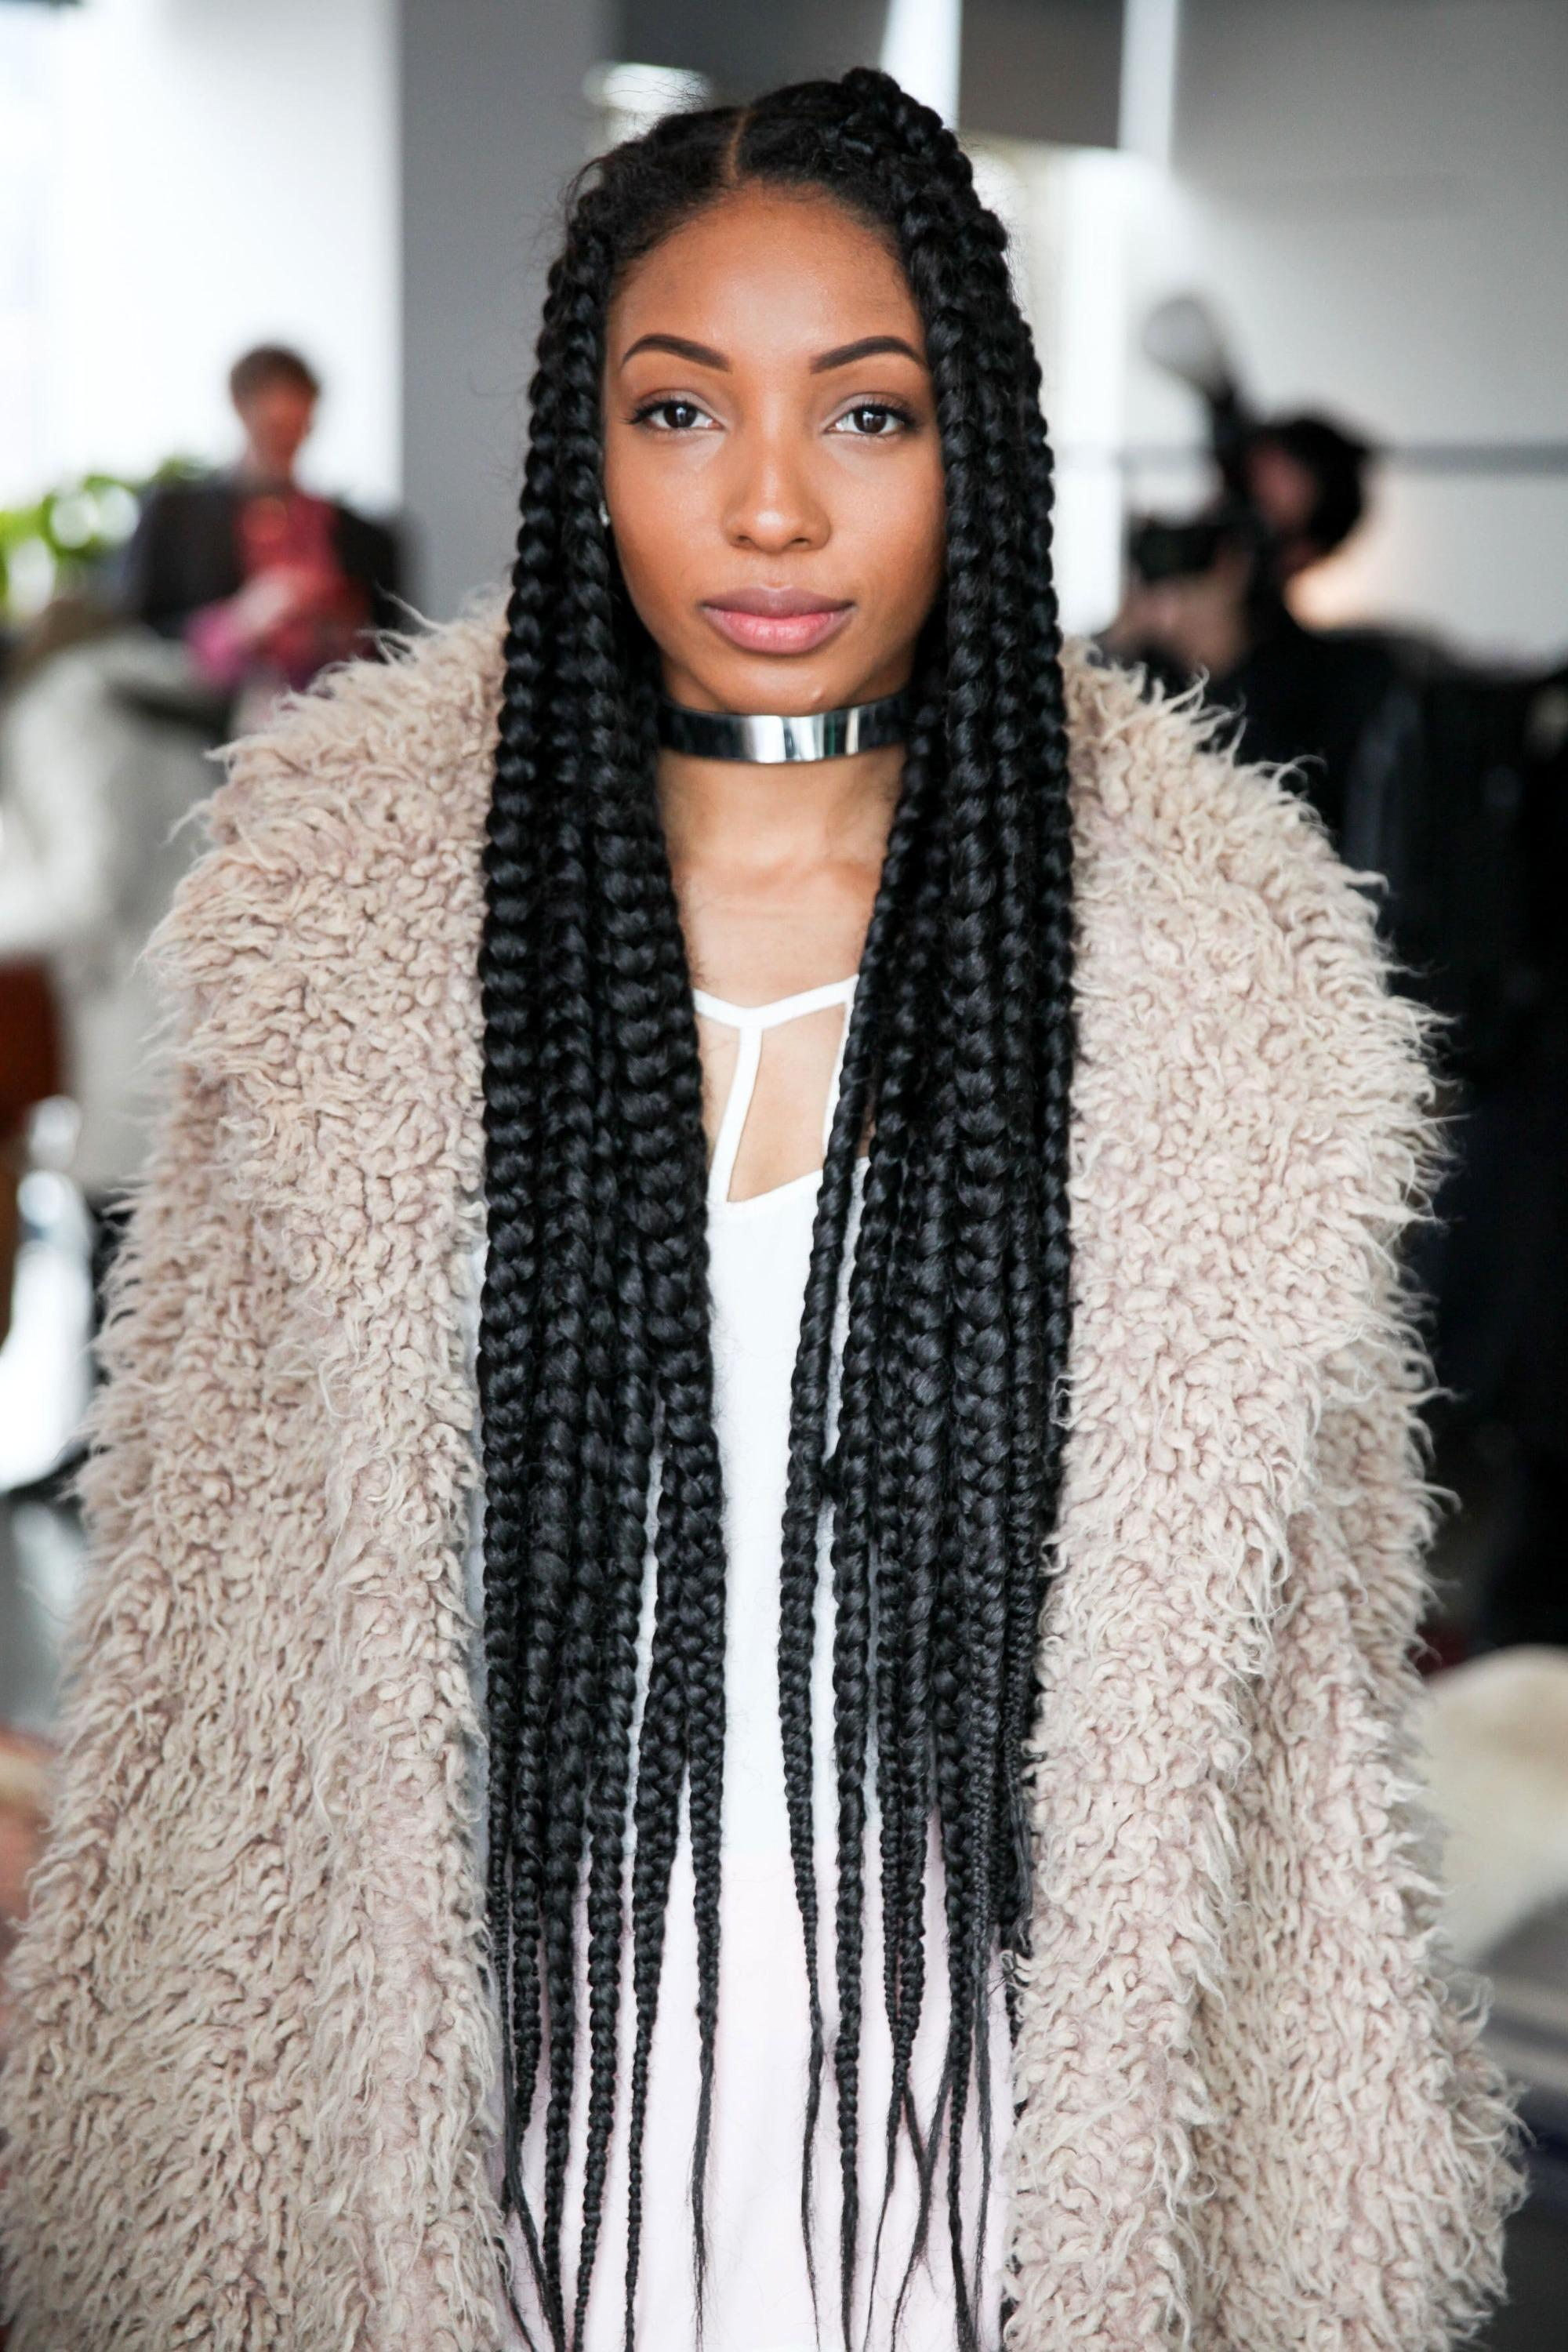 Celebrities Rocking Poetic Braids: The Best A-list Looks